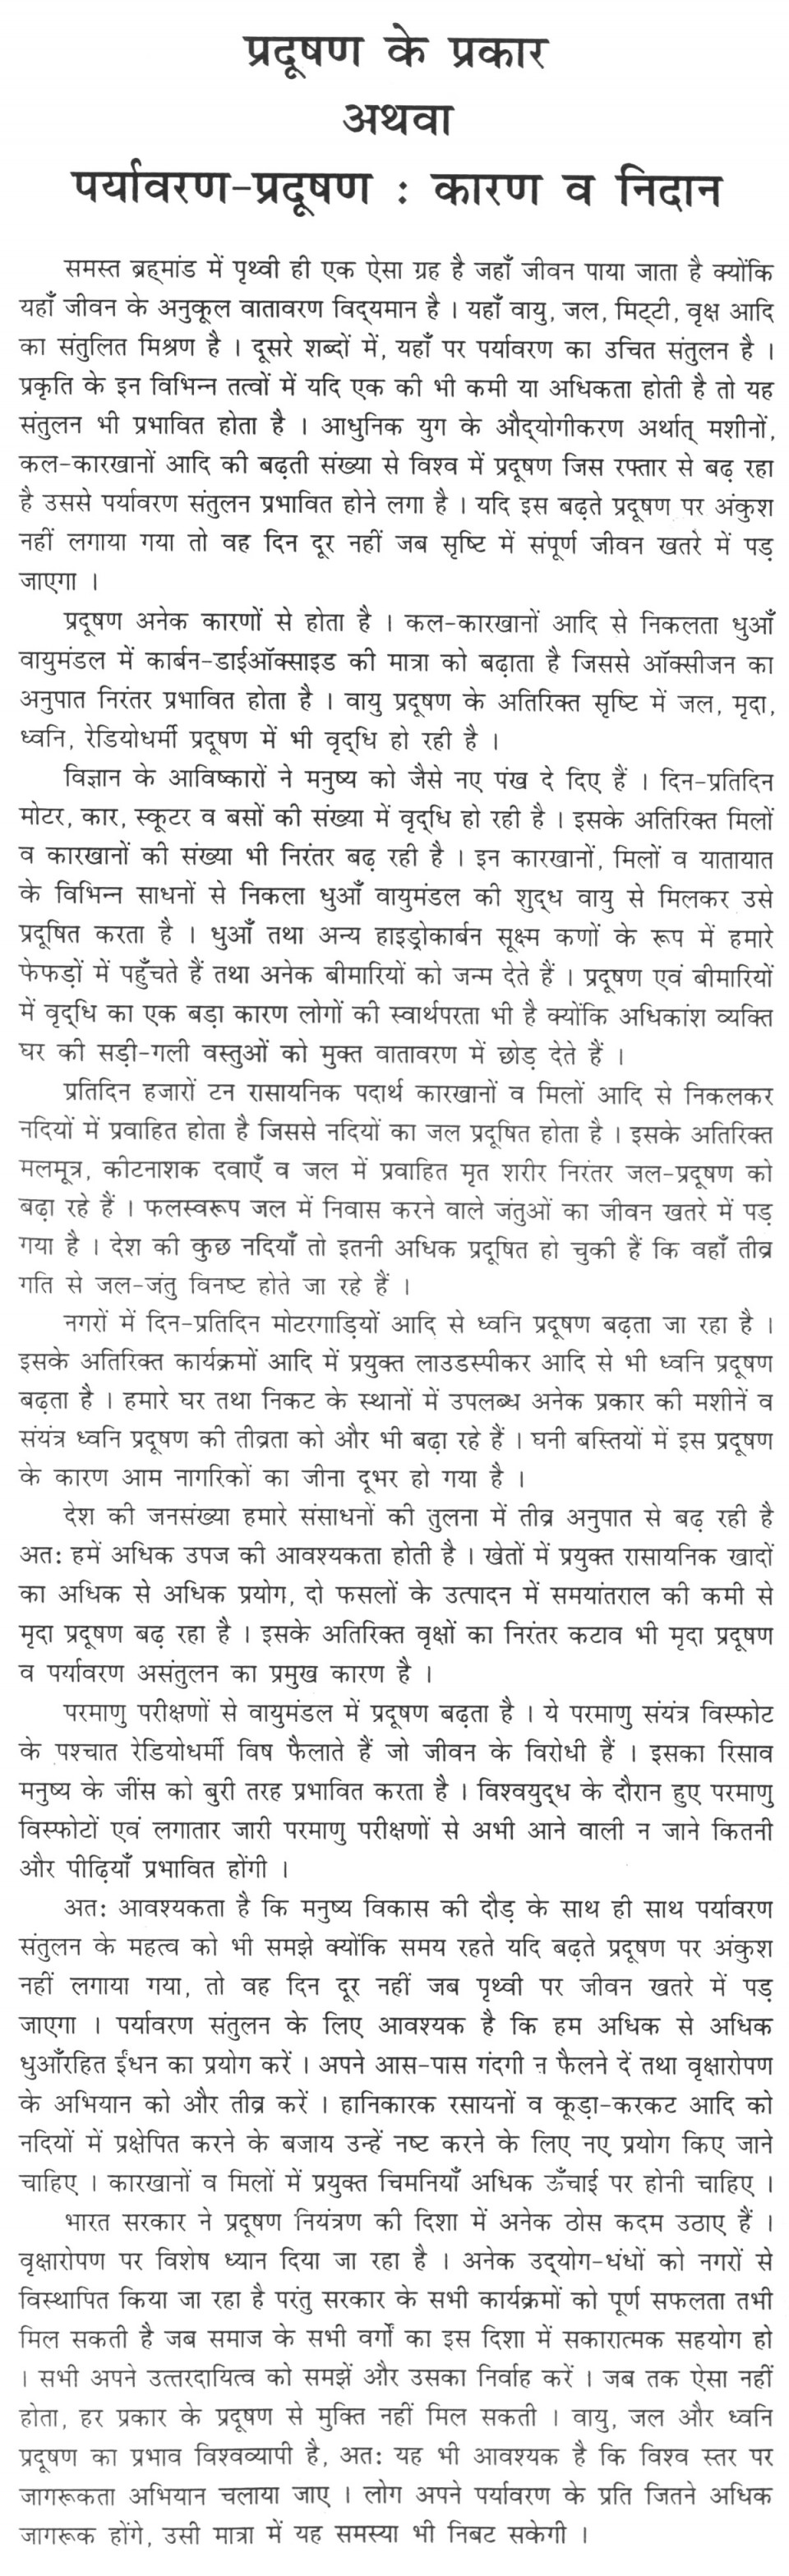 014 Good Habits Essay In Hindi Exceptional Reading Habit Wikipedia 960